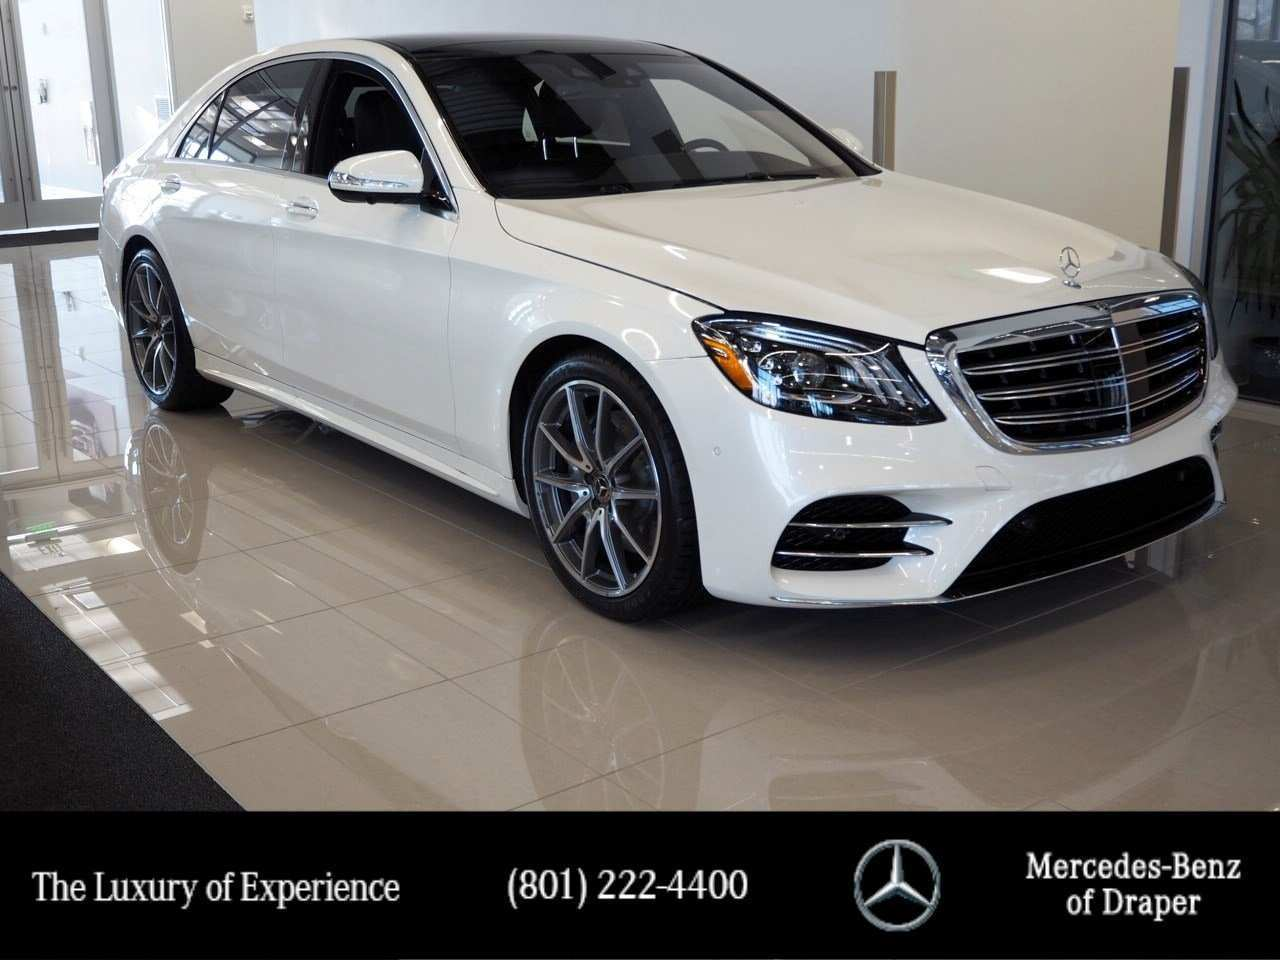 39 All New S560 Mercedes 2019 Configurations